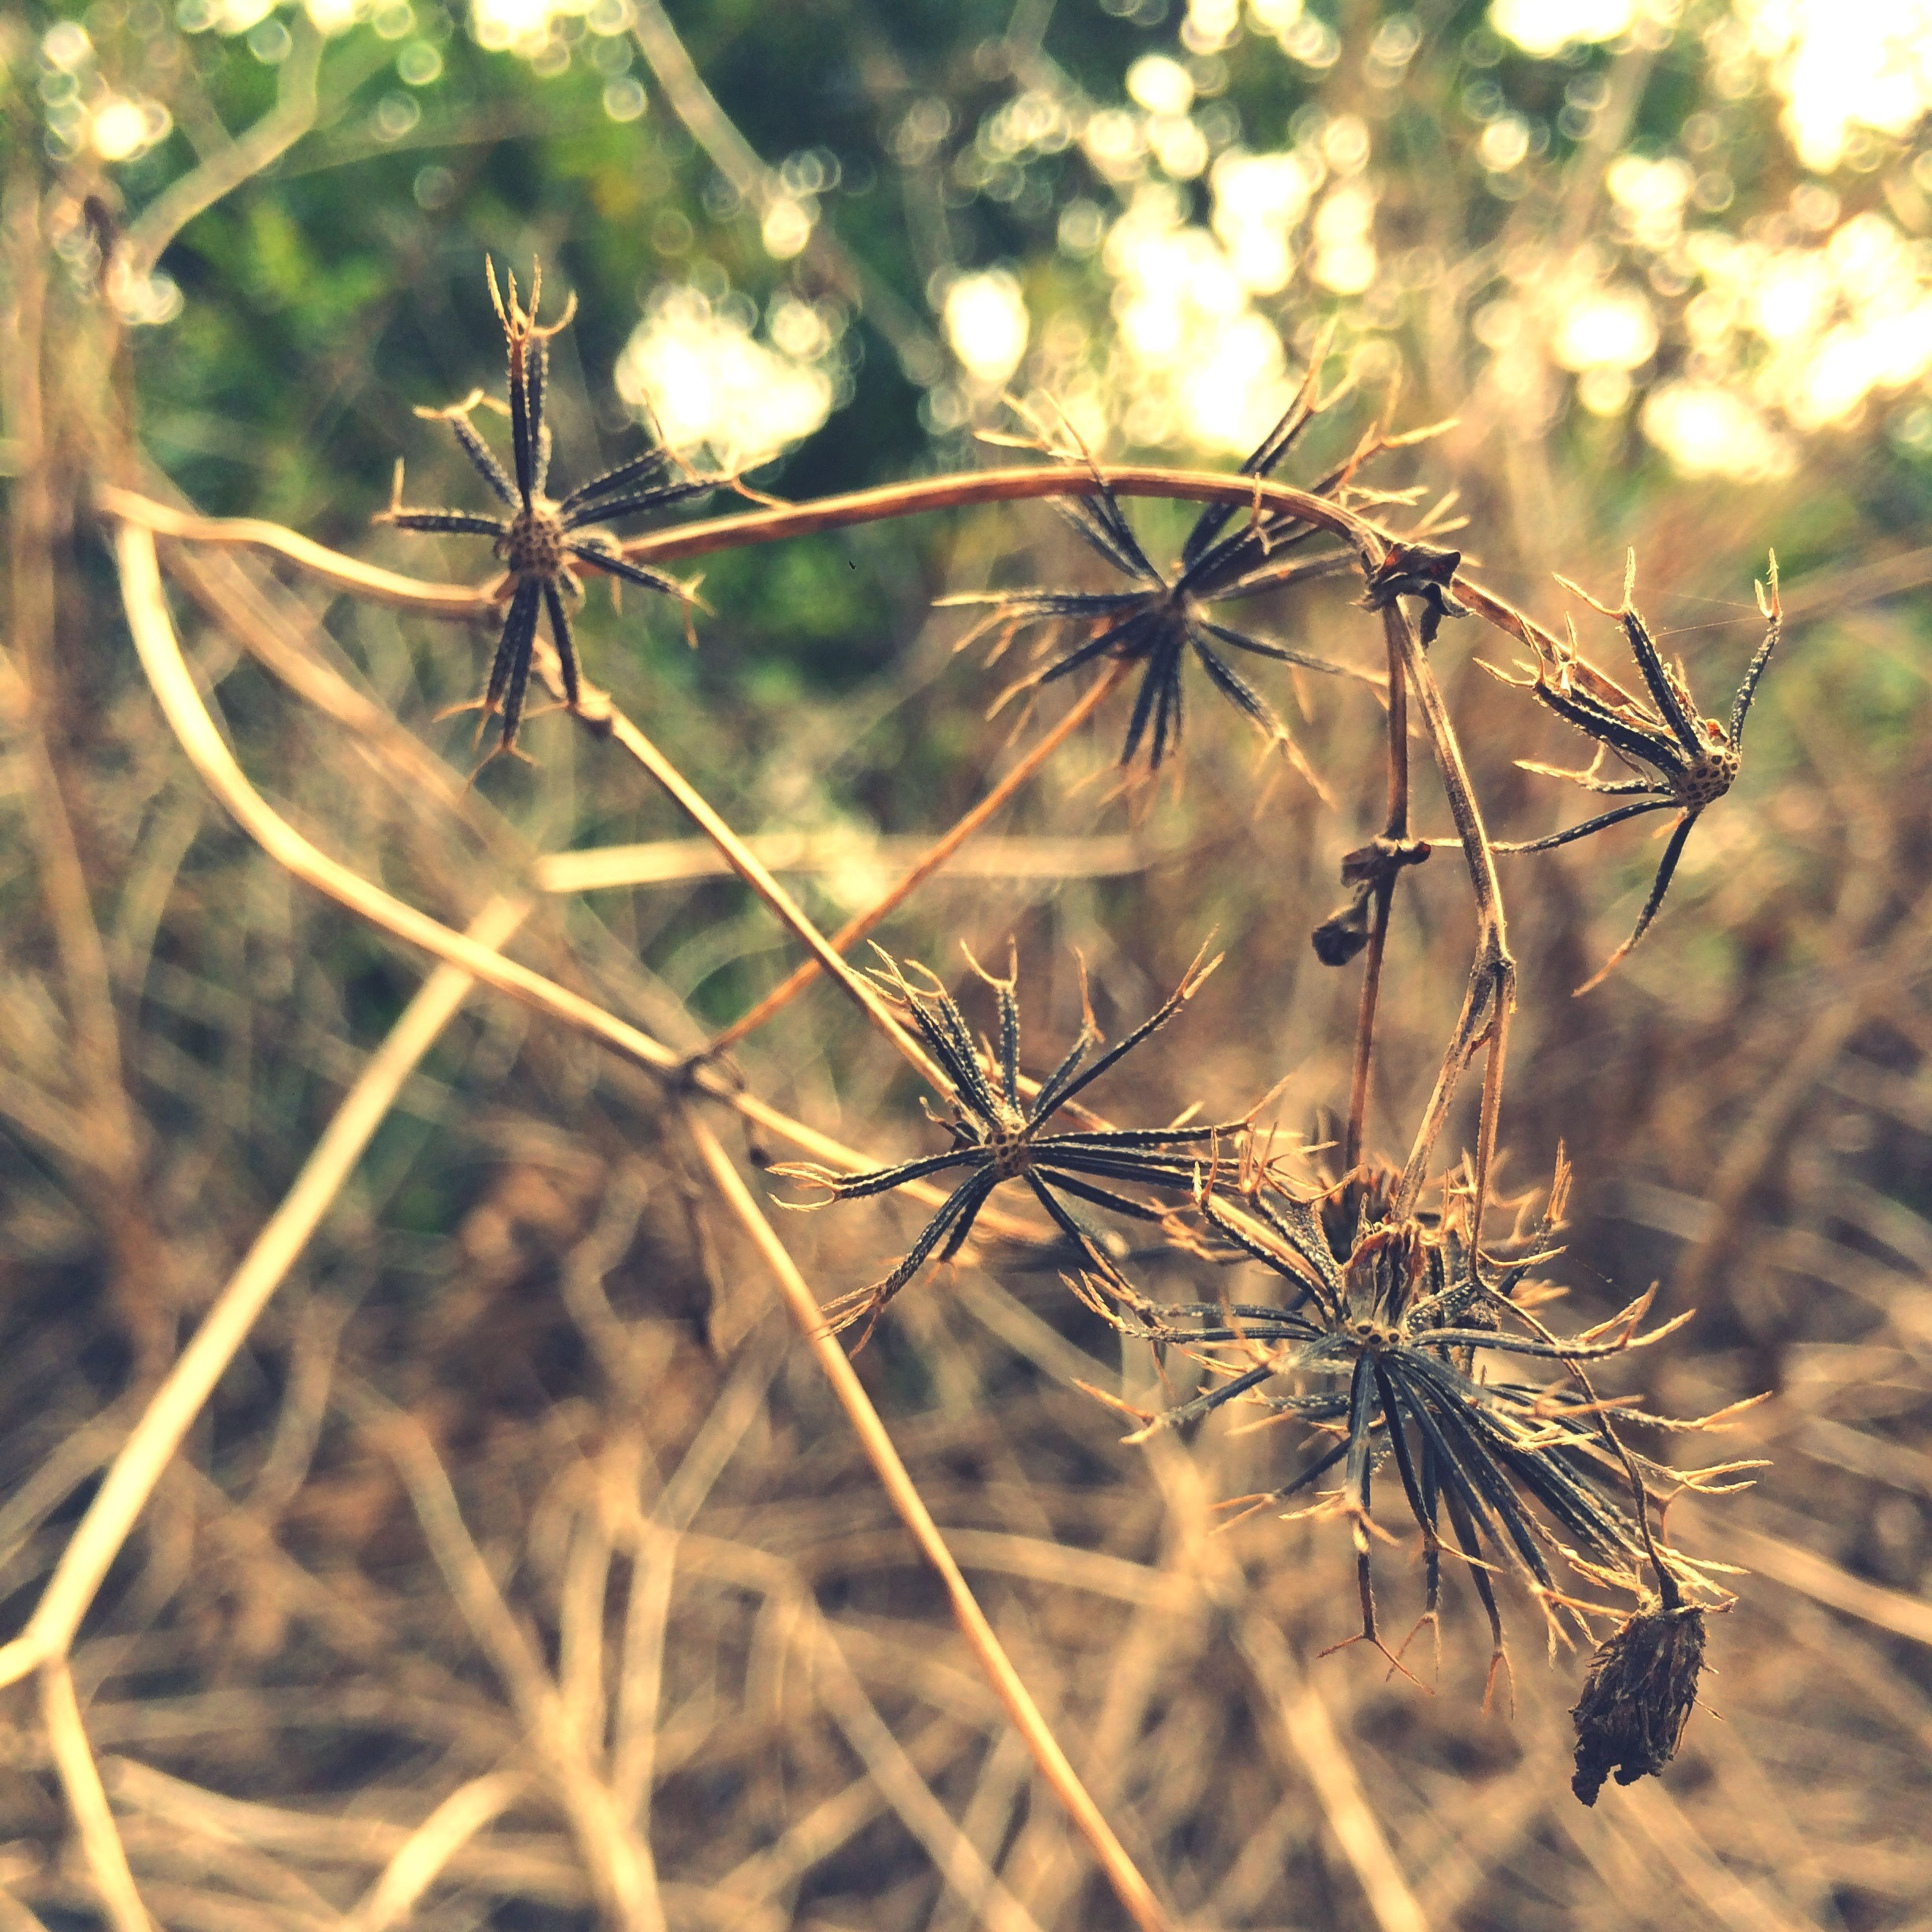 plant, nature, close-up, outdoors, no people, growth, day, branch, beauty in nature, fragility, desaturated